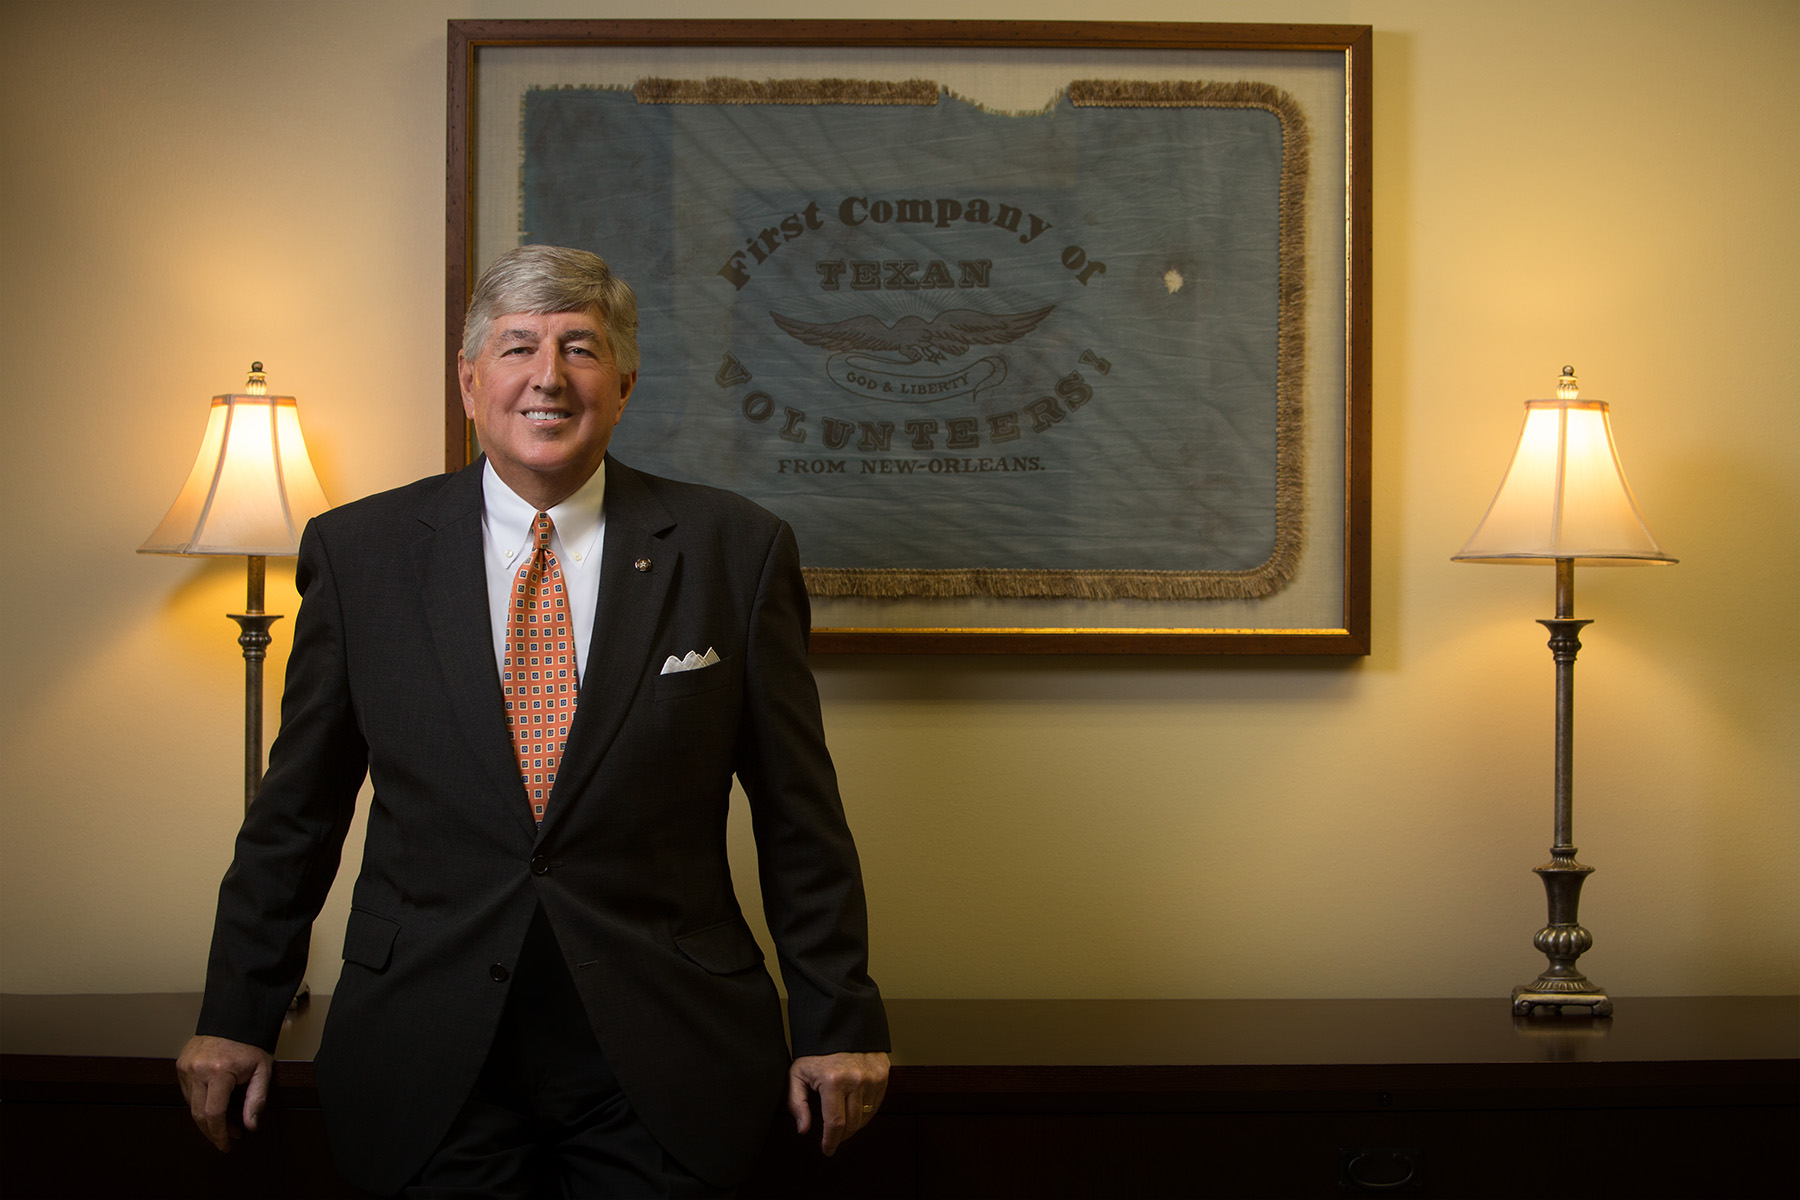 Texas Citizens Bank Chief Operating Officer, Jimmy Allen at Pasadena, Texas banking center and headquarters